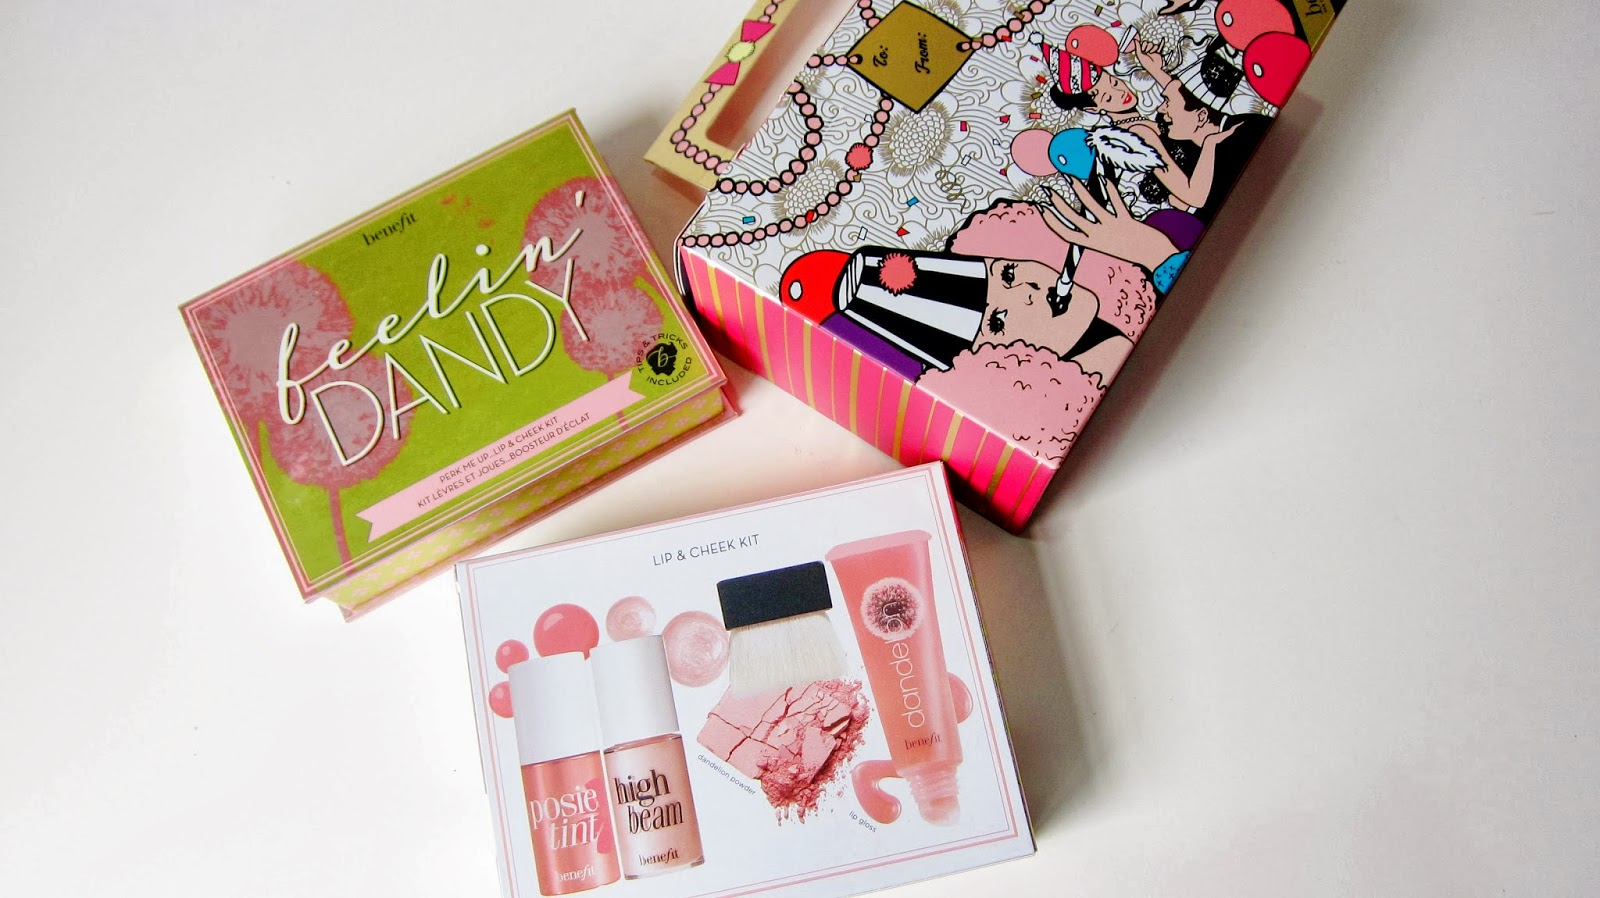 BENEFIT COSMETICS FEELIN' DANDY LIP & CHEEK KIT